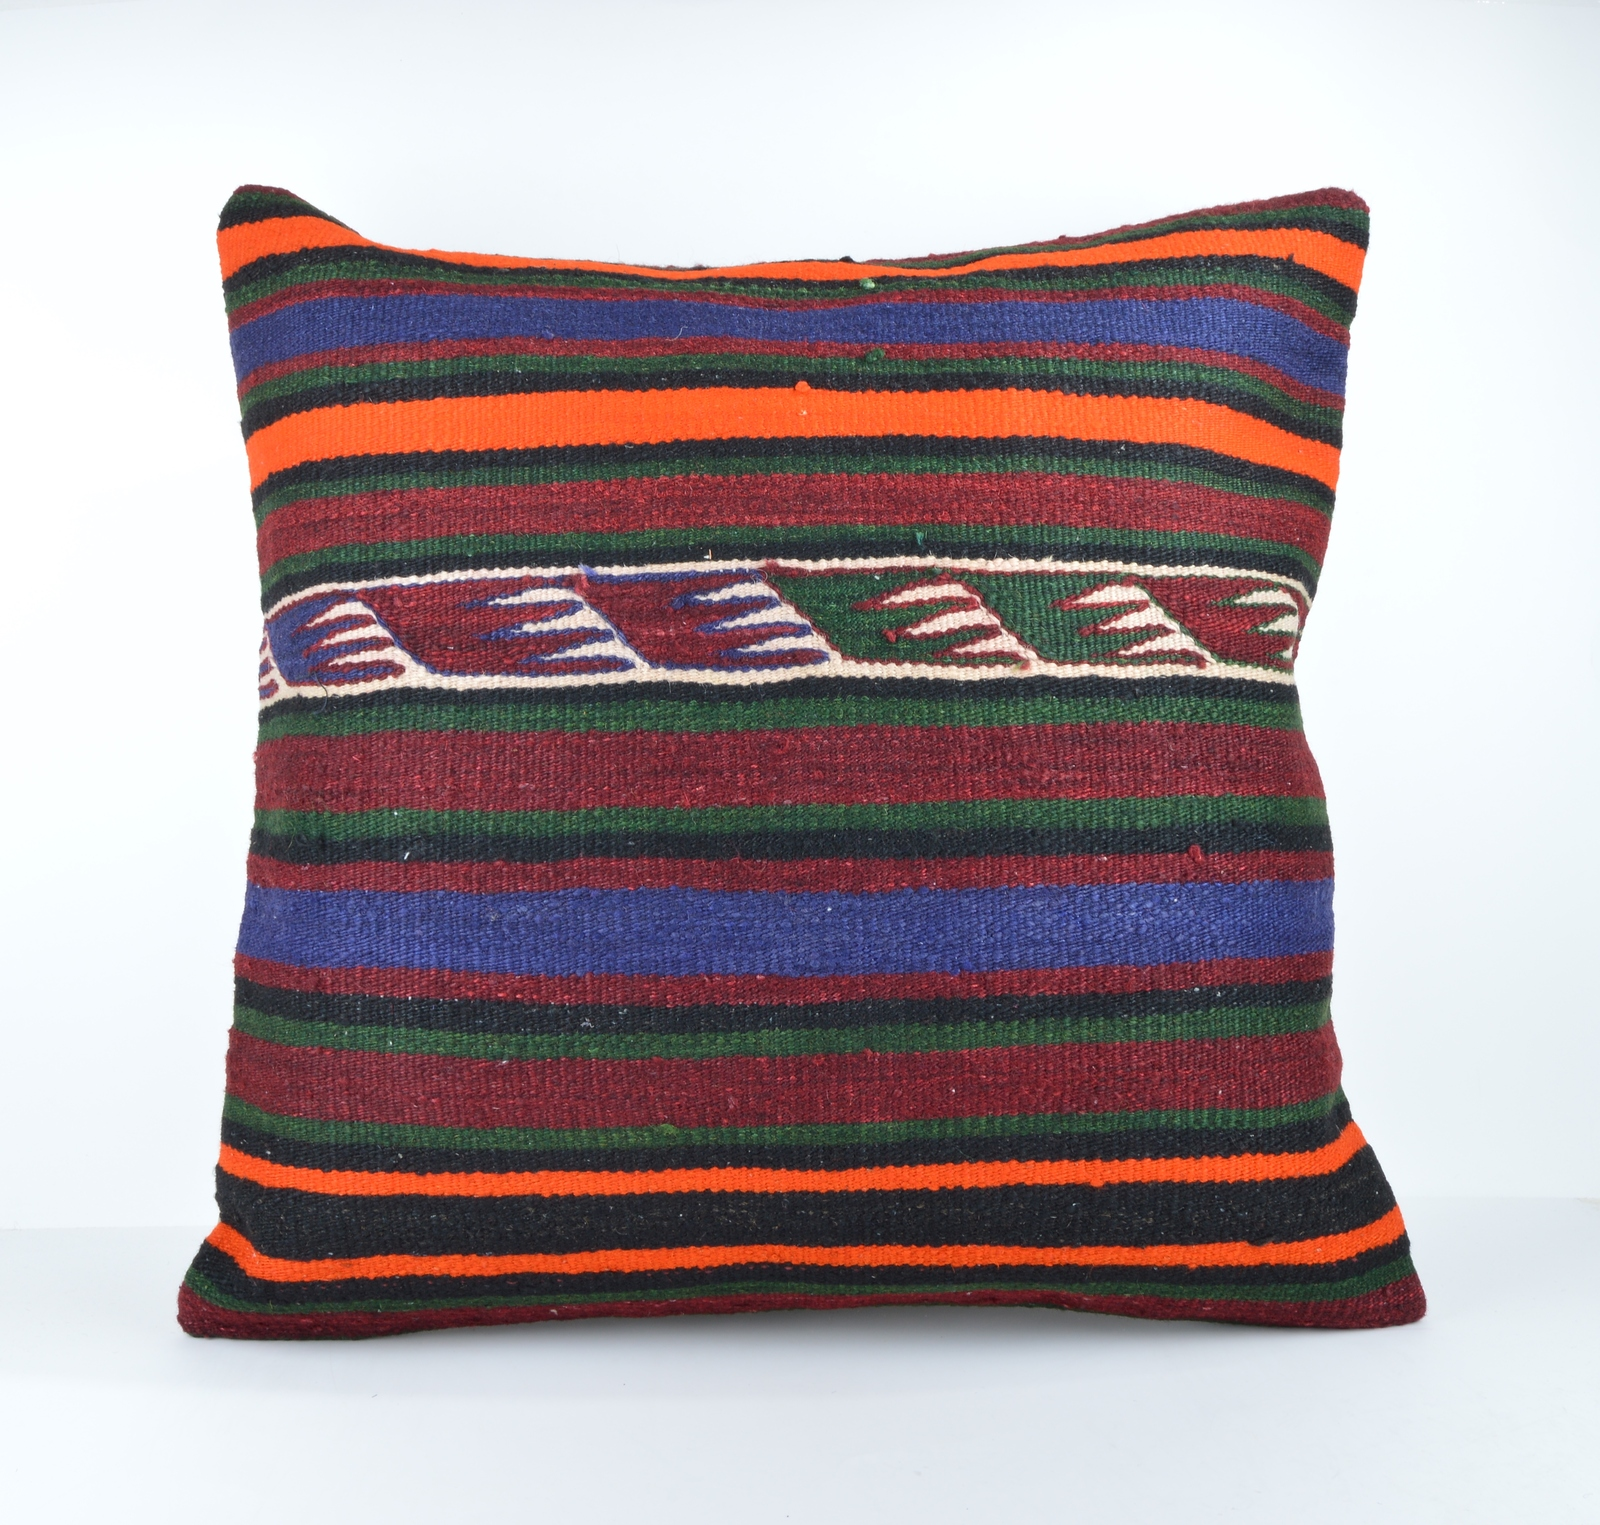 24x24 large kilim pillow big pillow decorative pillow cover large cushion case - Pillows